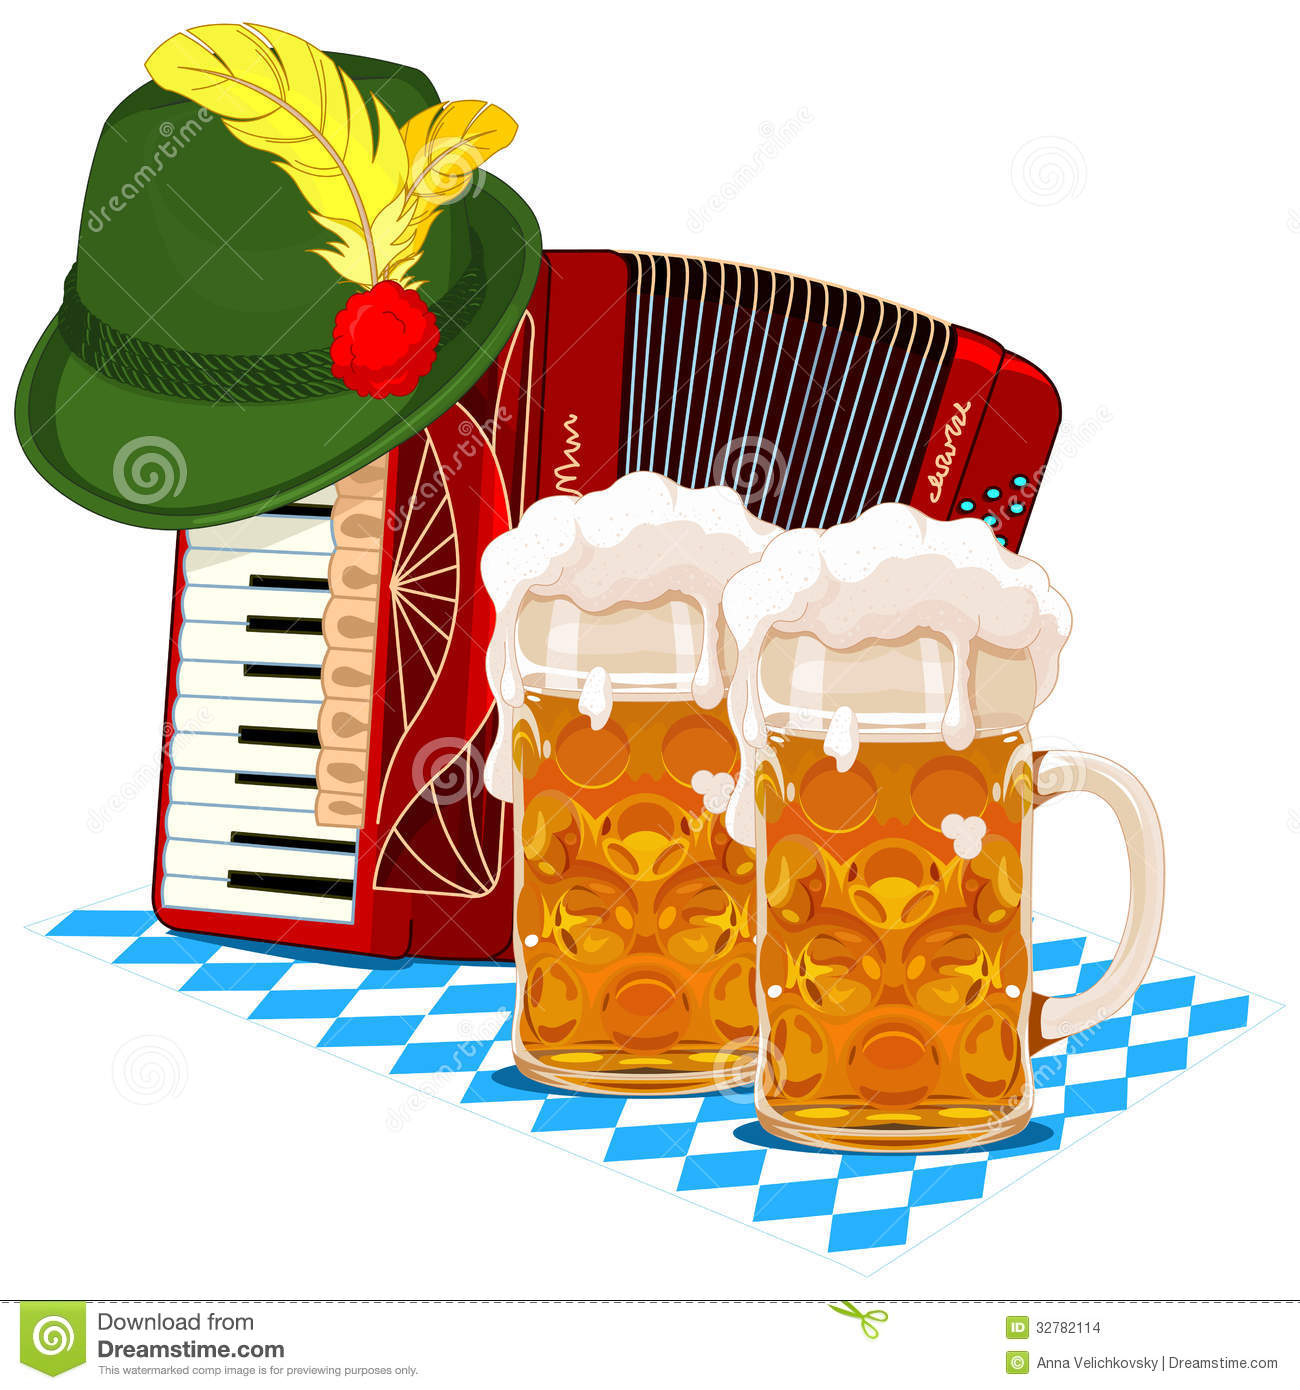 Oktoberfest clipart free download clipart royalty free library Oktoberfest clipart festival - 142 transparent clip arts, images and ... clipart royalty free library